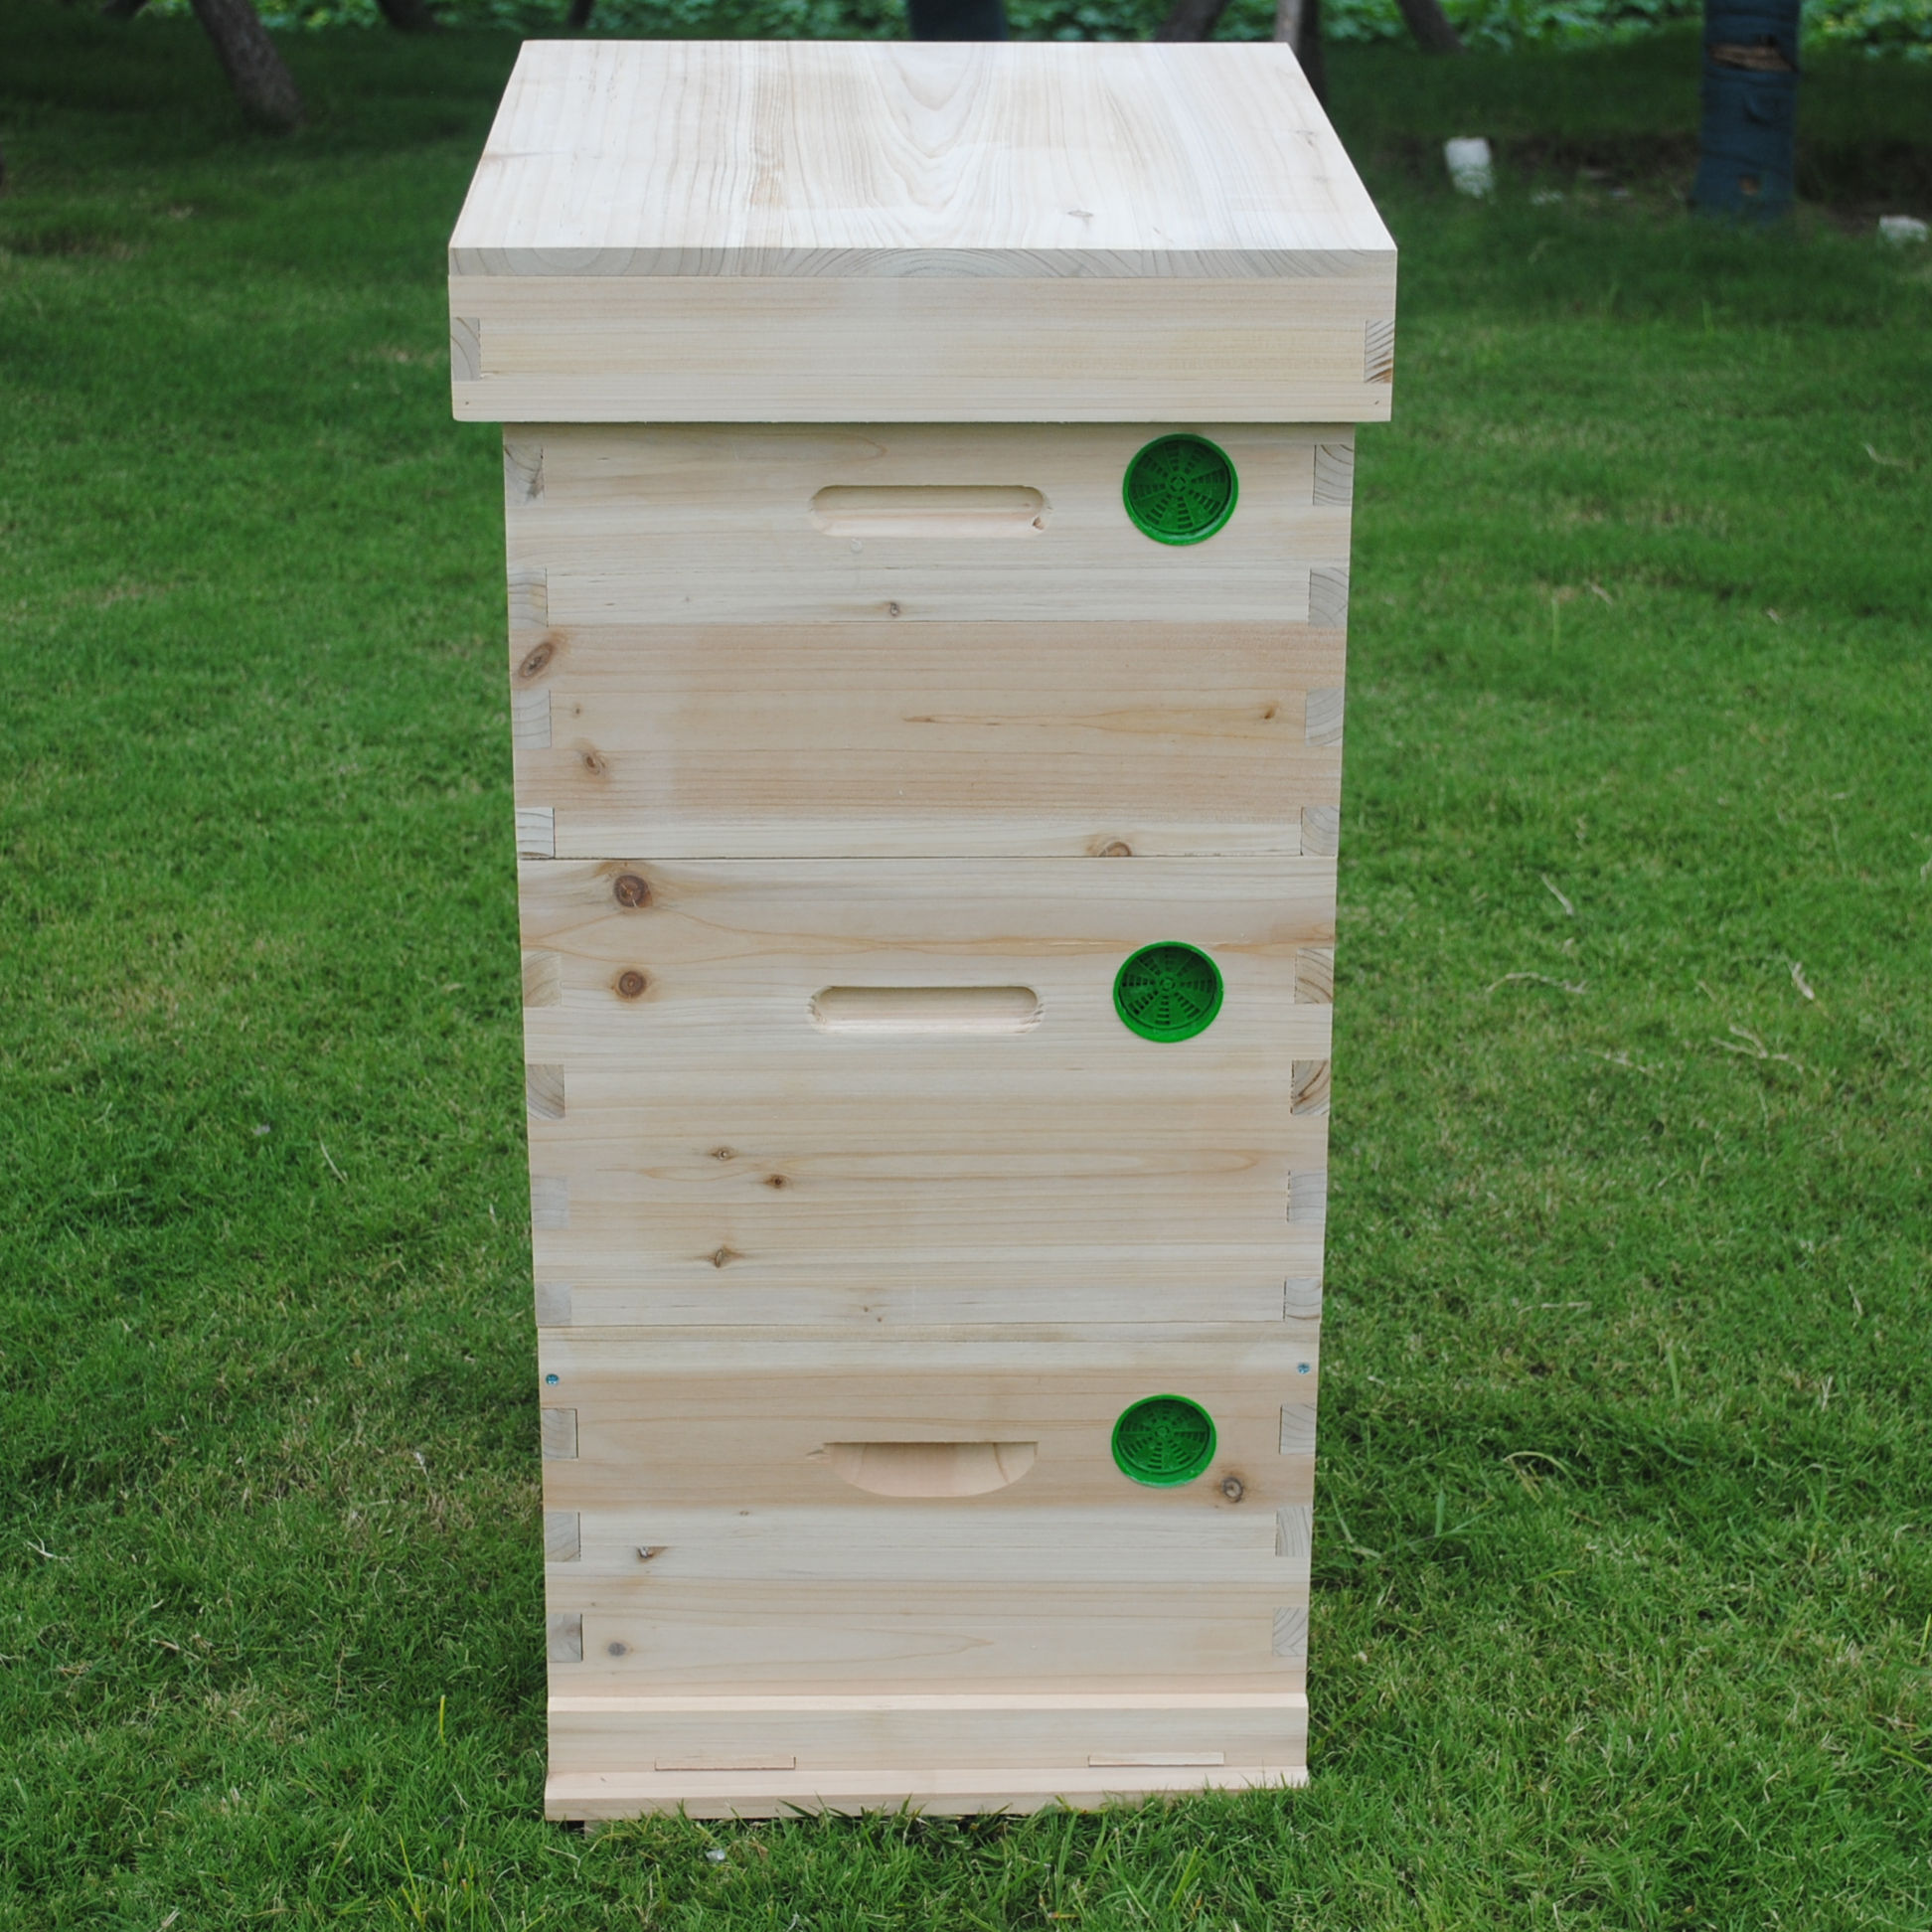 2019 Pine wood box beehive langstroth bee hive 2/3 layers